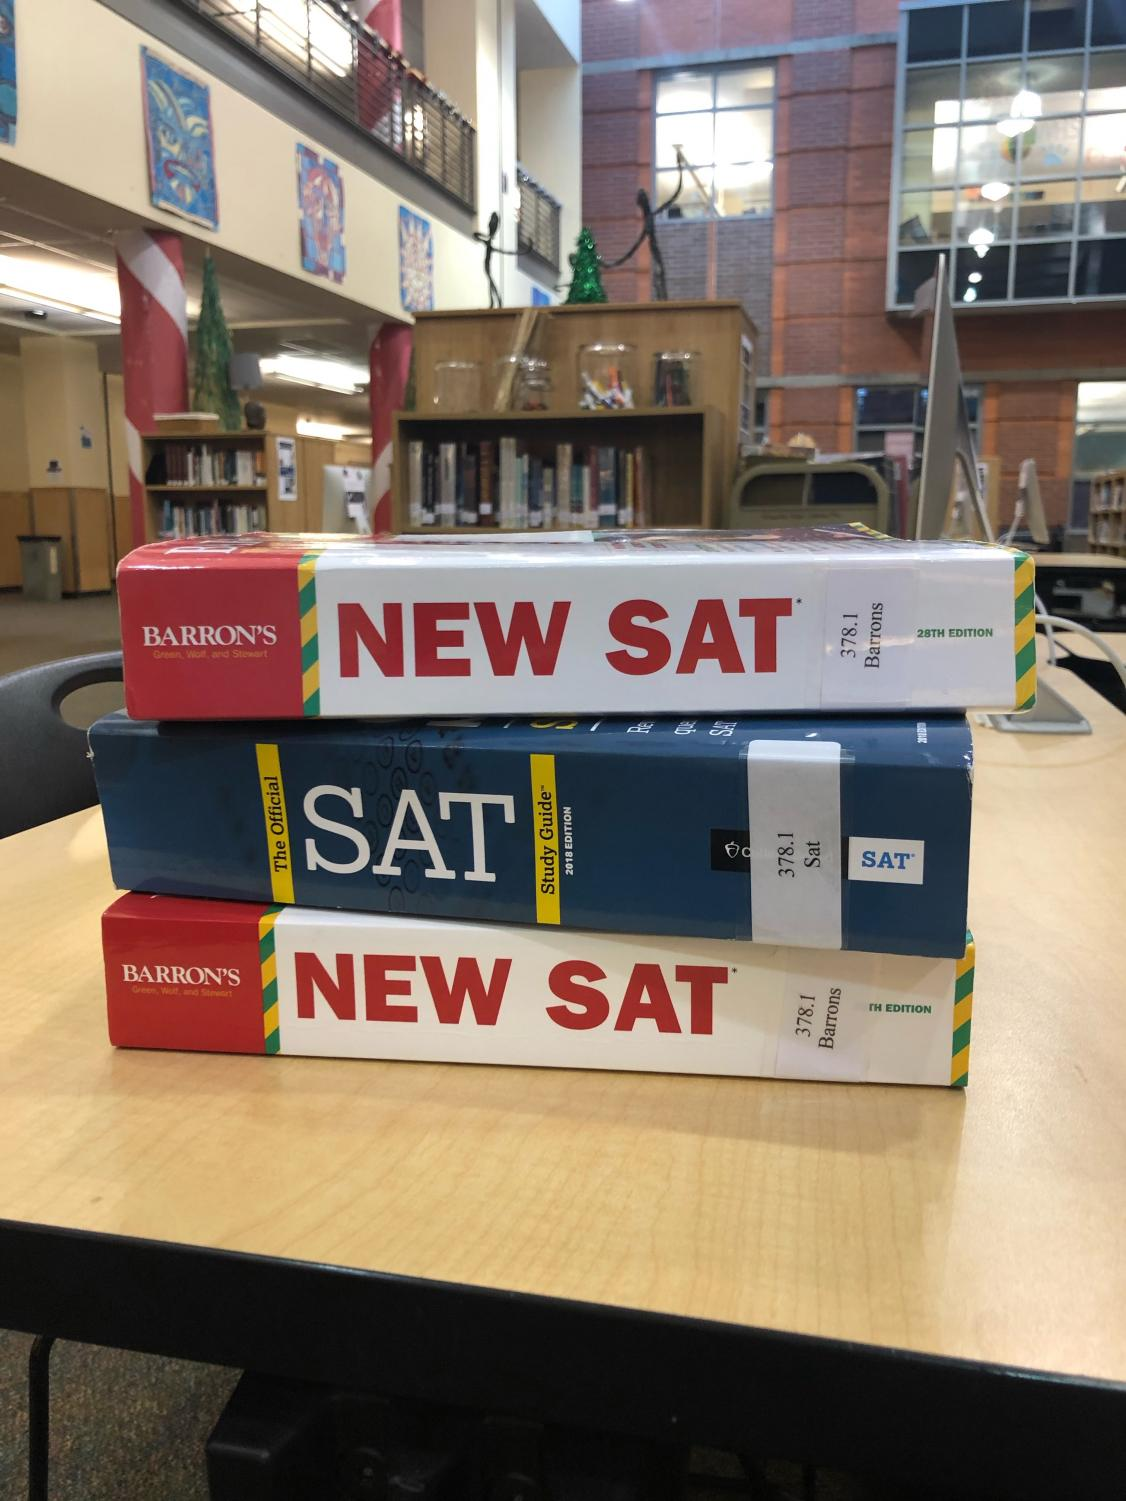 In order to provide students a way to study for their next big test at school, the WVHS library has stocked up with study books. You can go check one out now!